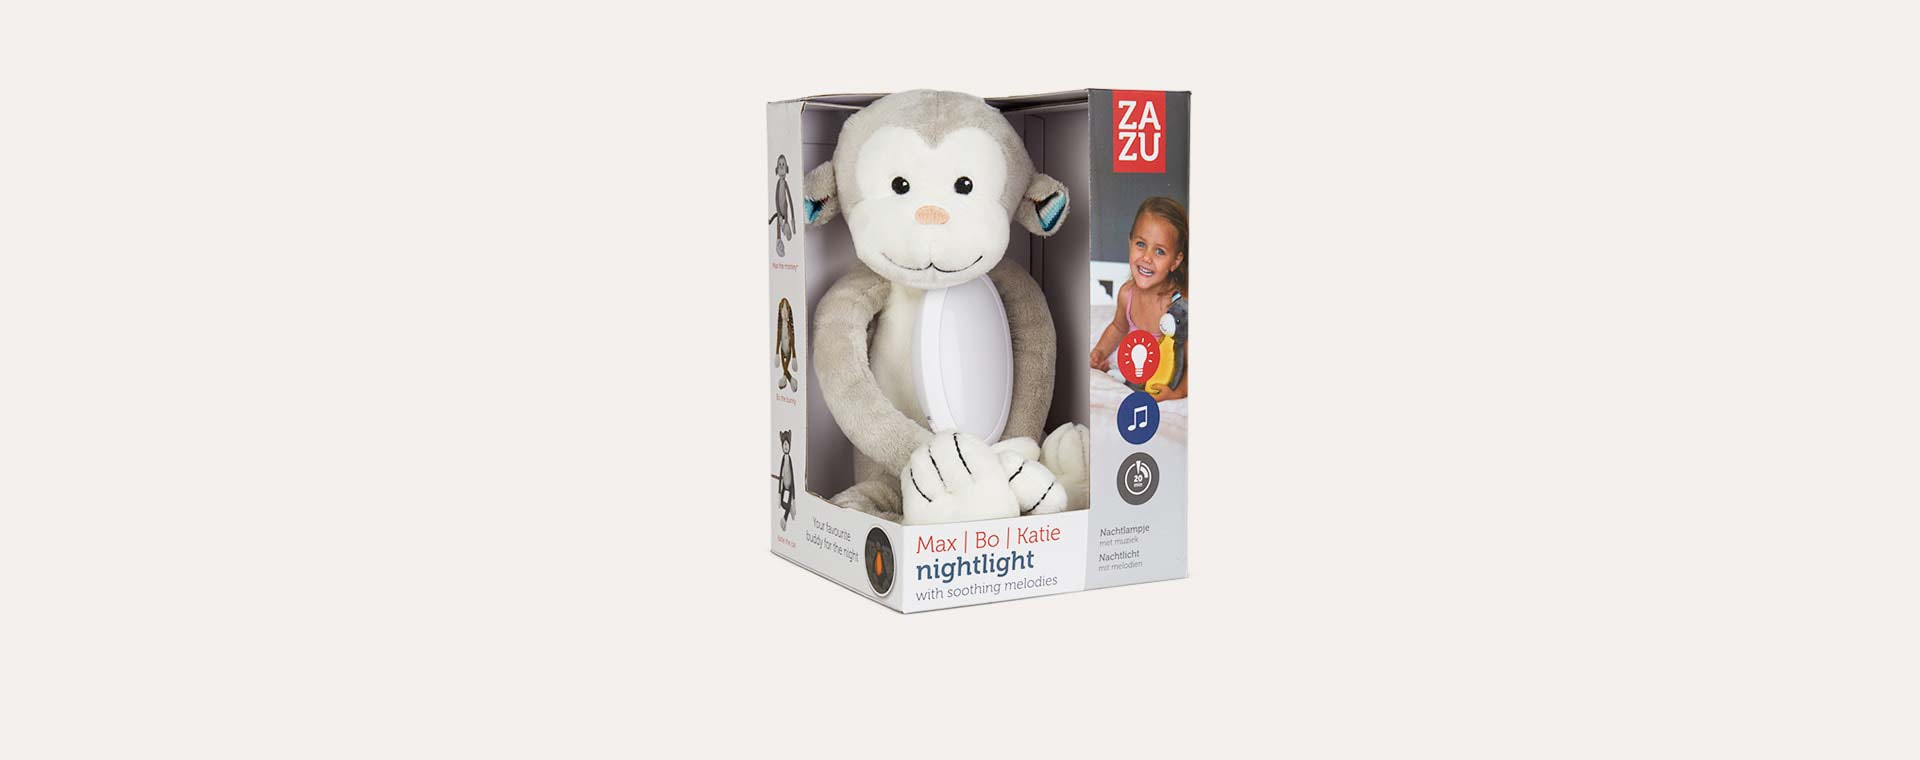 Max the Monkey Zazu Nightlight Soft Toy